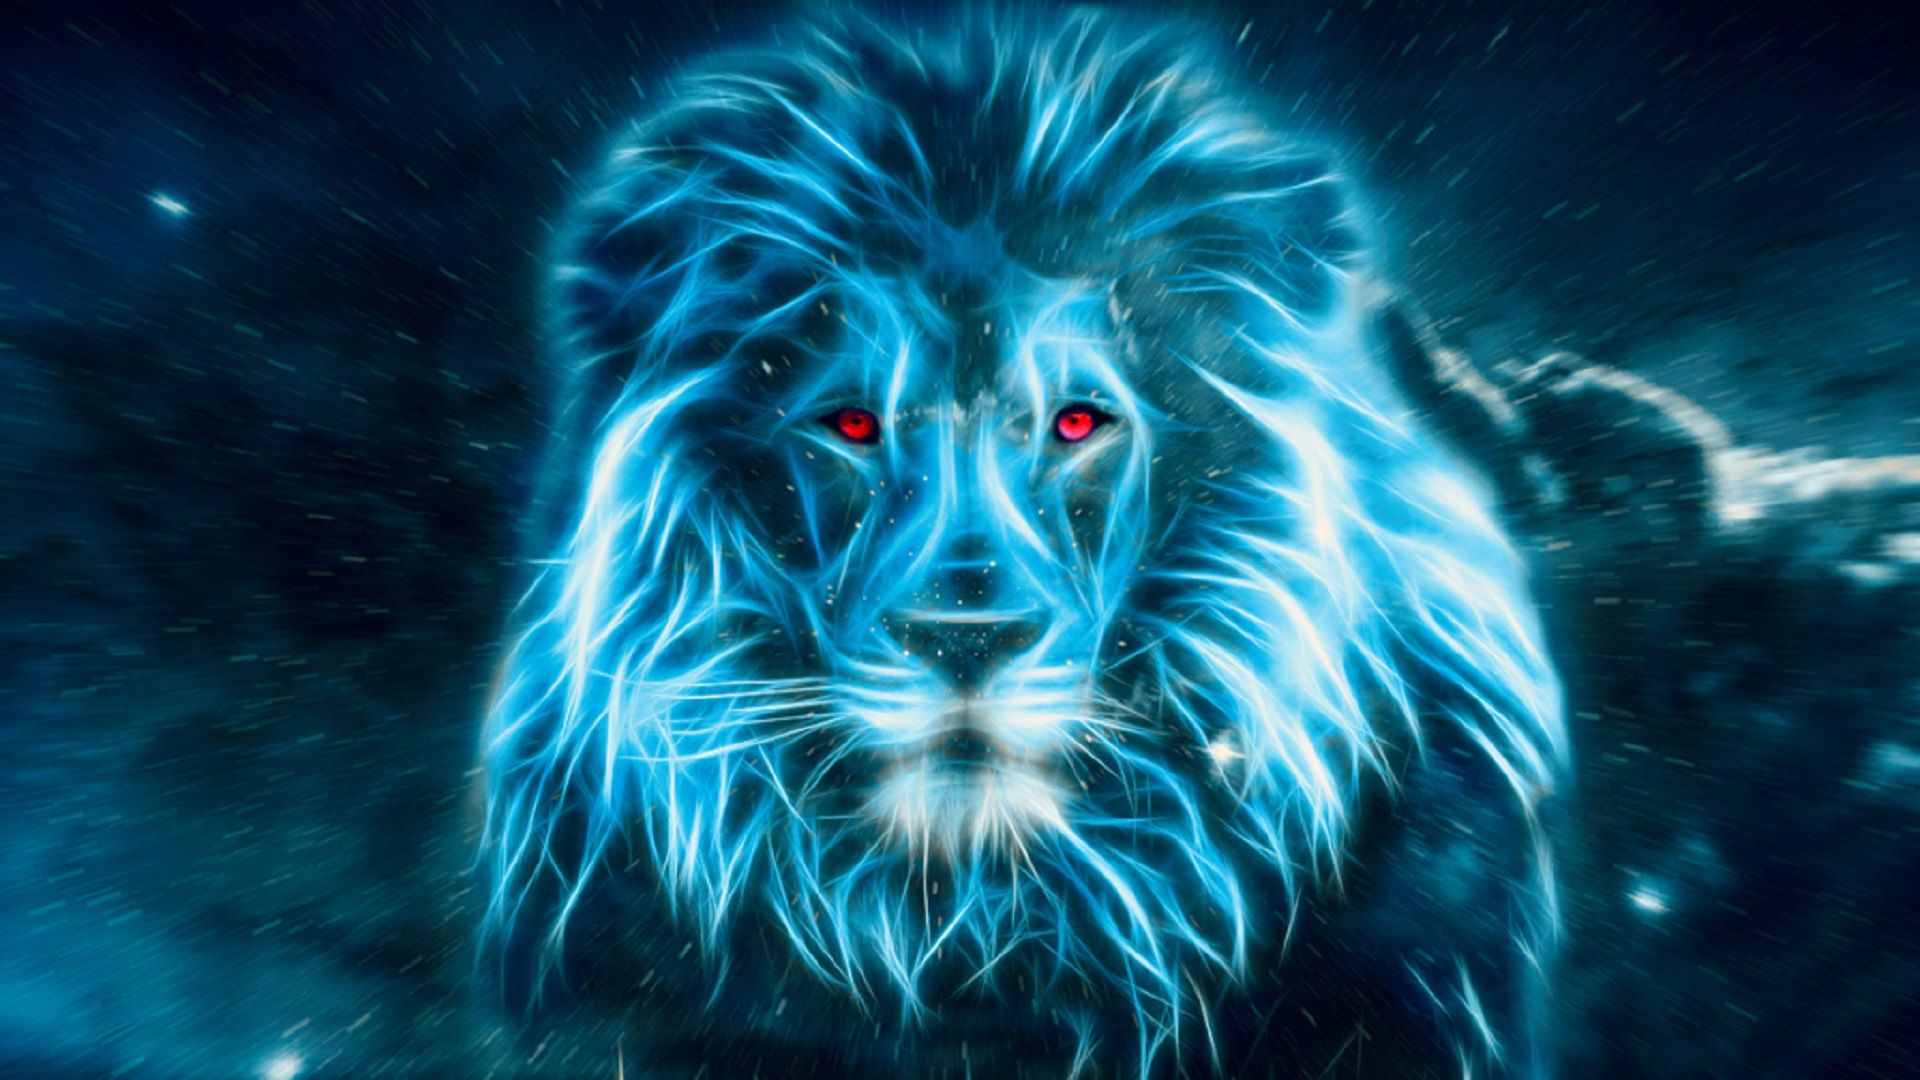 Lion in blue Wallpapers[19201080] Music IndieArtist